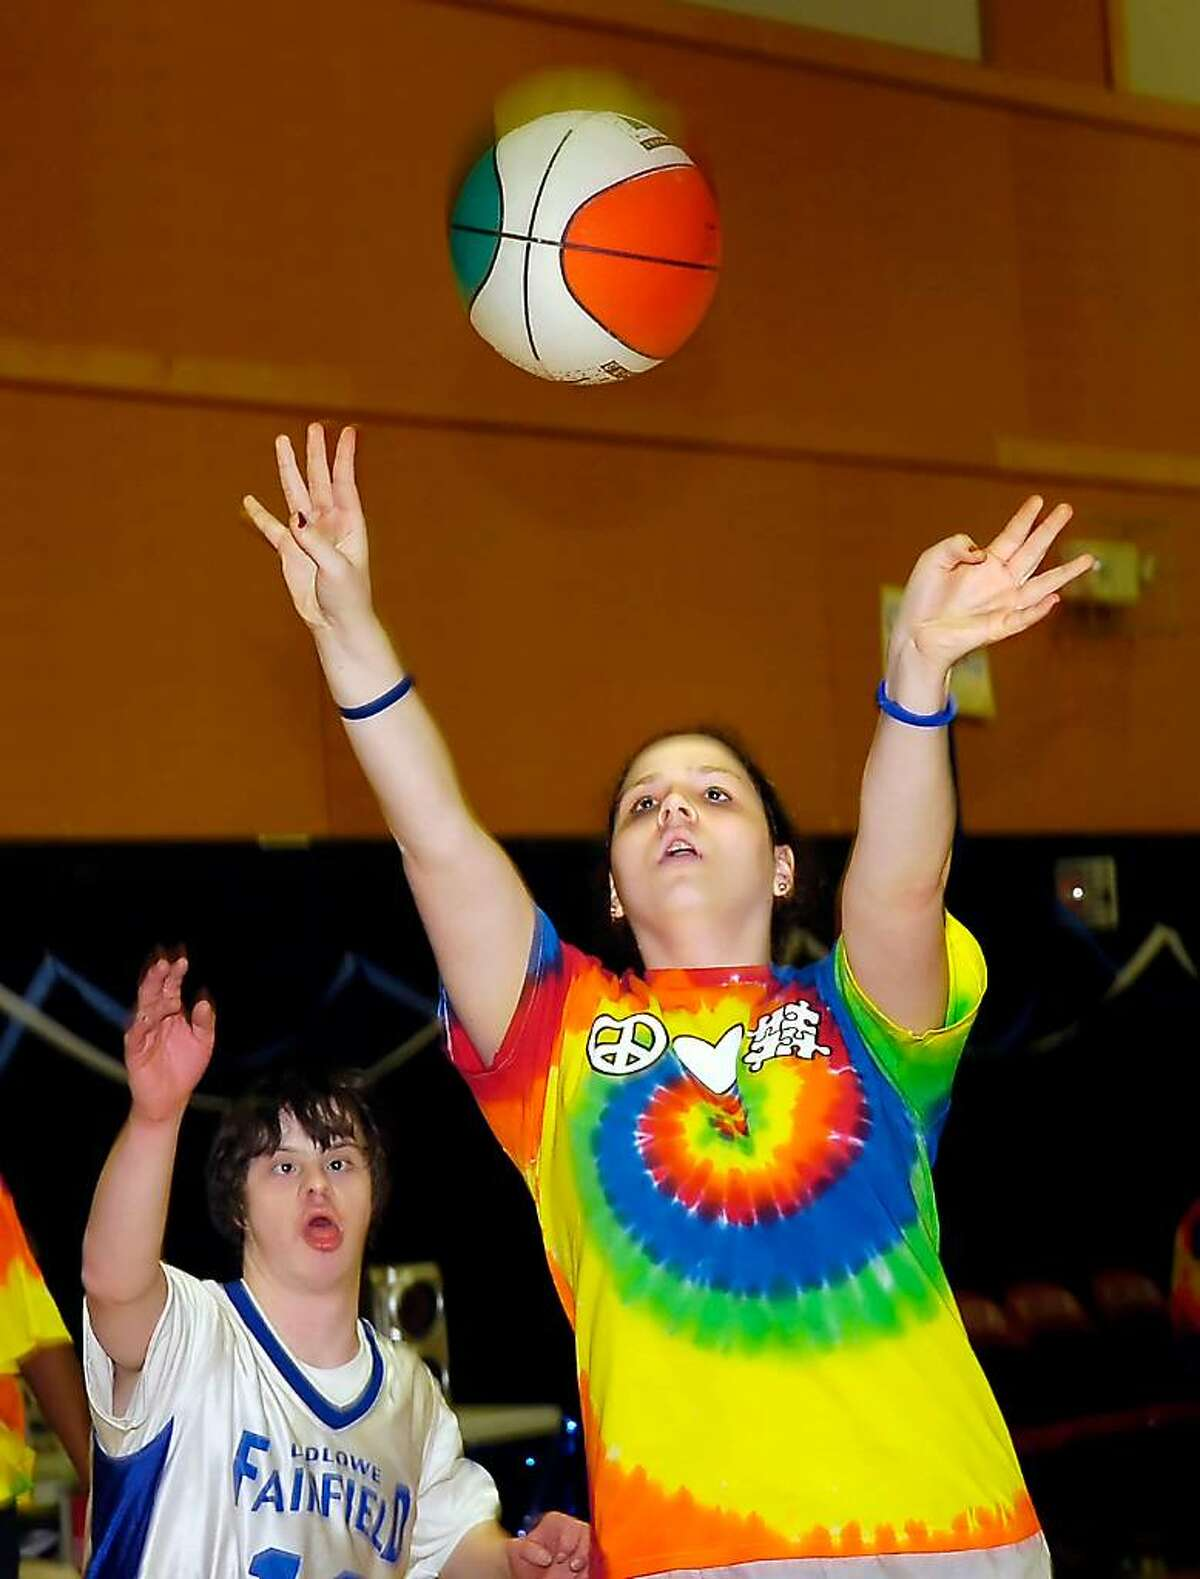 Olivia Shea of the Stamford Black Knights Unified Sports basketball team launches a shot during a game against Fairfield Ludlowe at St. Luke's School, Monday afternoon, March 2nd, 2010, during a Unified Sports basketball tournament at the school. Unified Sports follows the United Sports Model which is part of a Special Olympics program in which the teams are comprised of middle- and high-school athletes with developmental disabilities and volunteers who may or may not have a disability. About a dozen team from Fairfield County competed in the tournament.